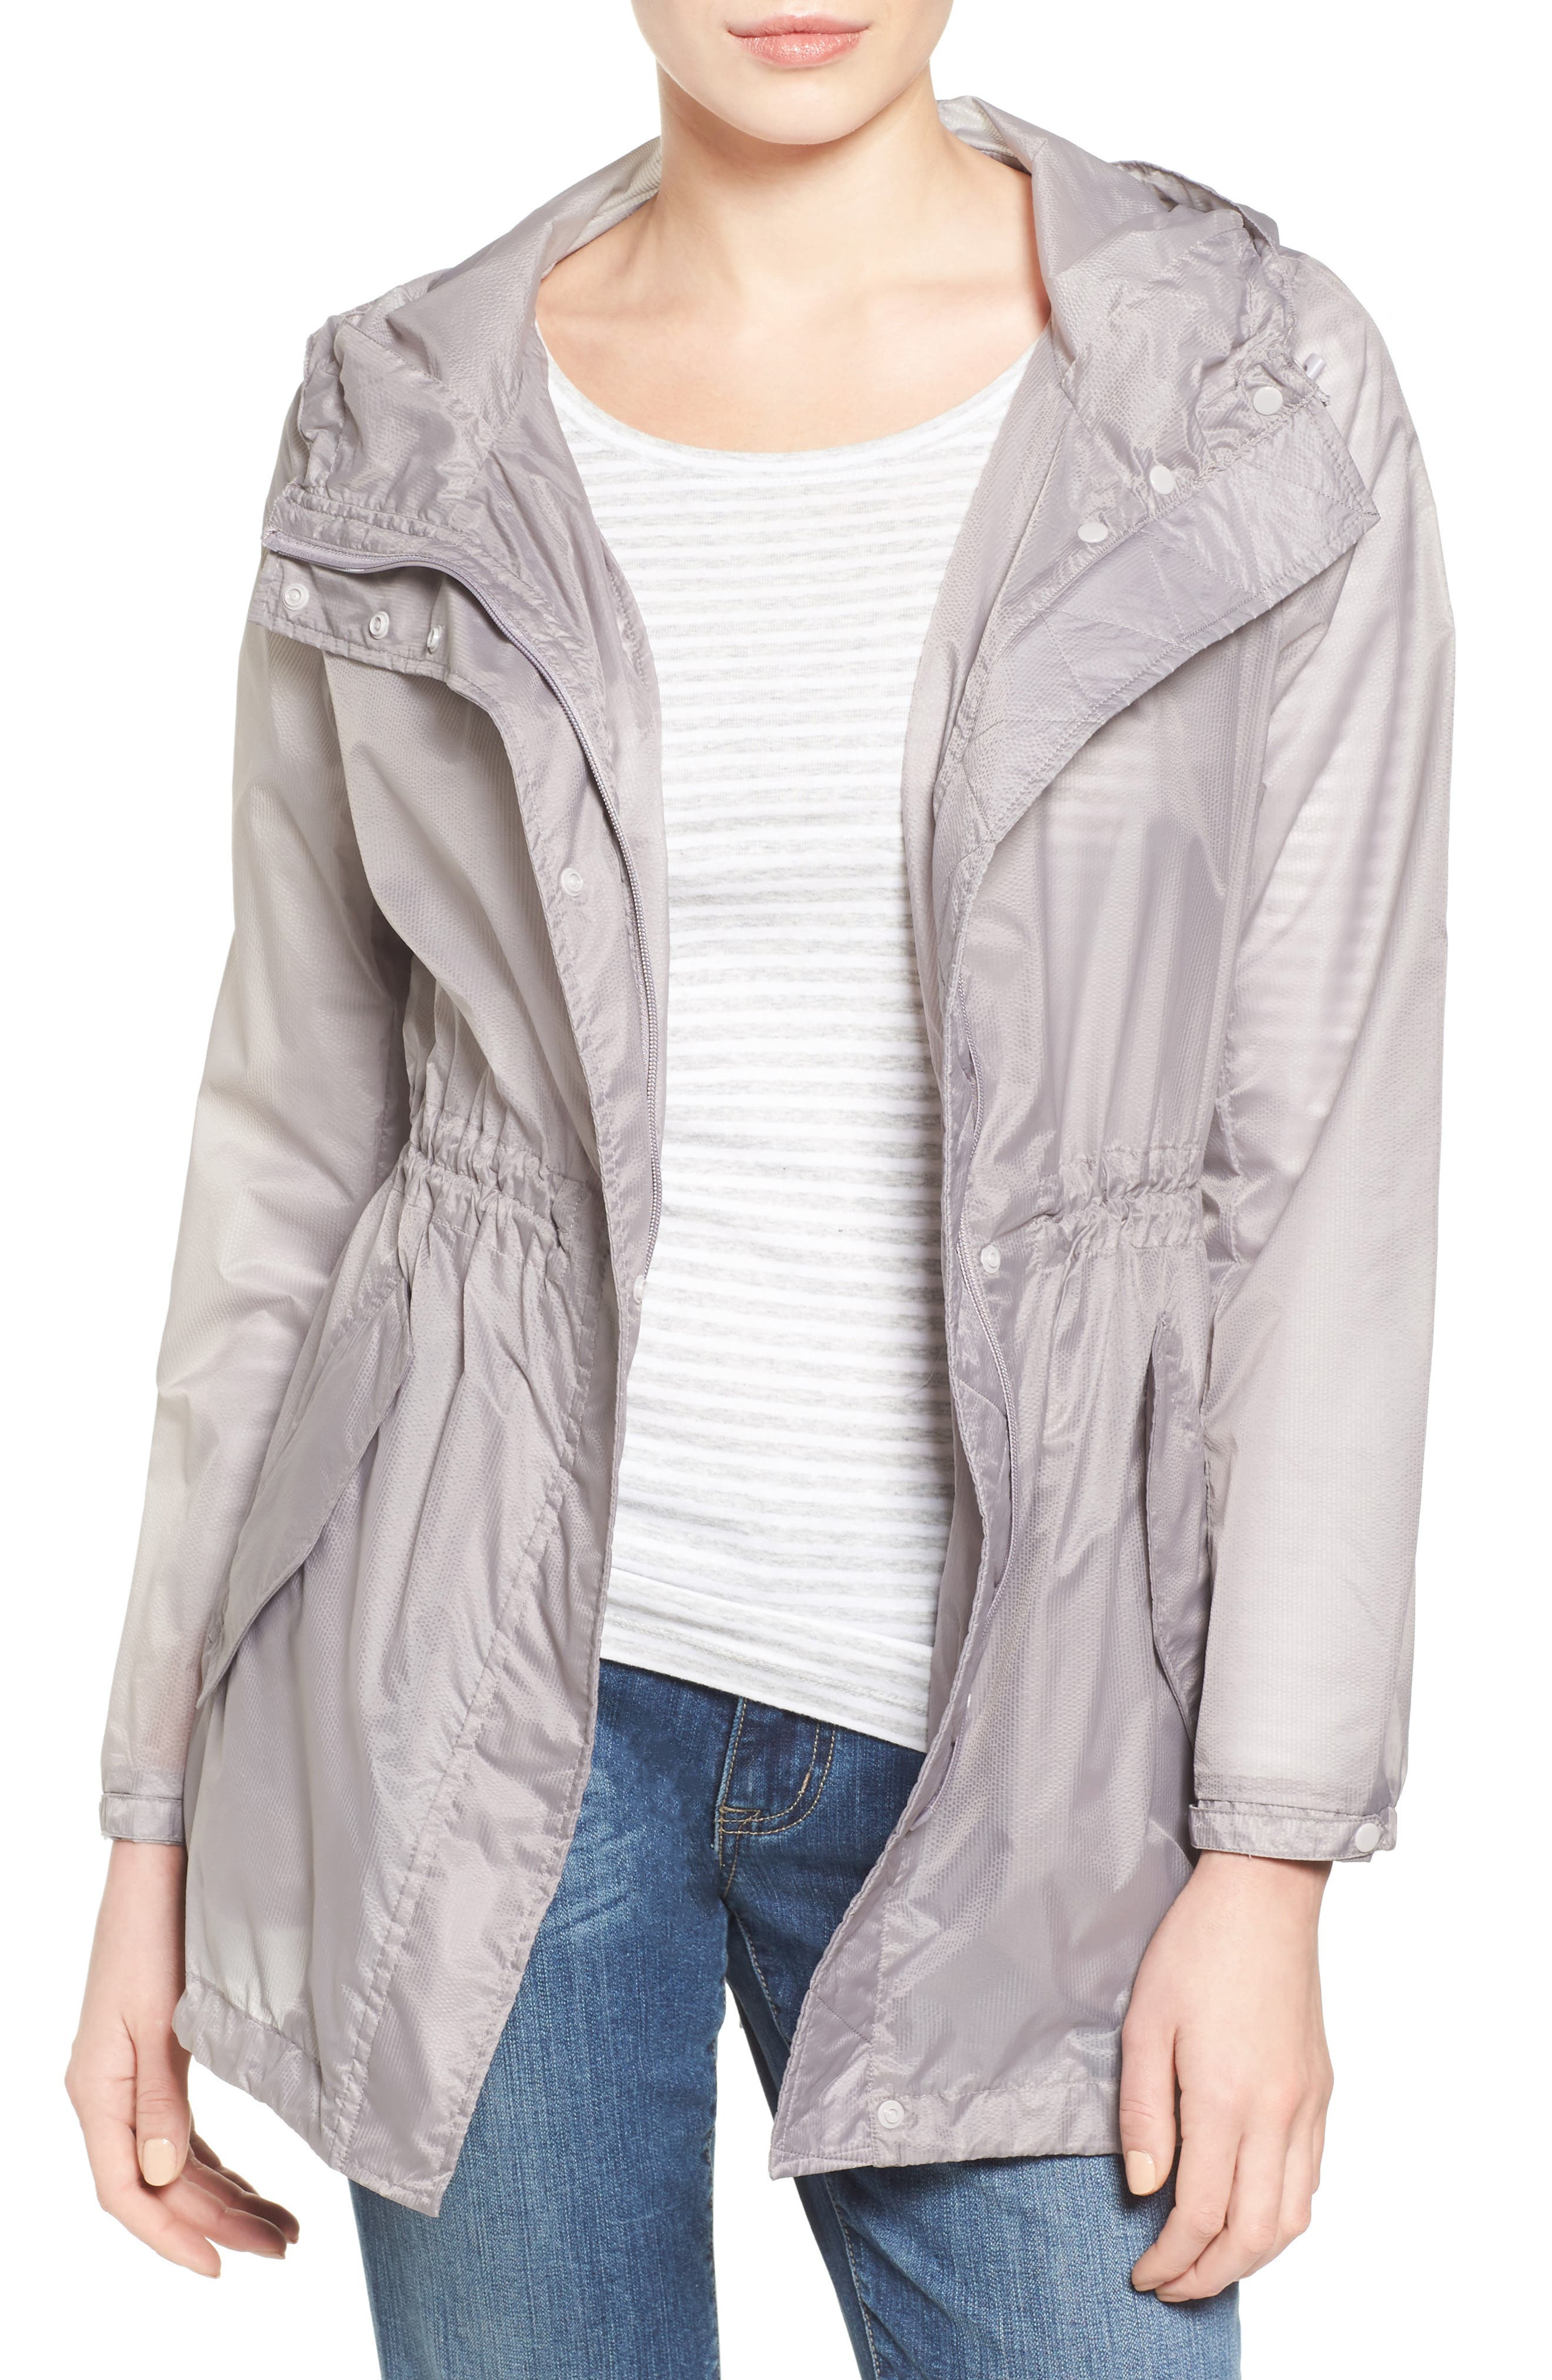 Teri Translucent Rain Jacket,                         Main,                         color, 068